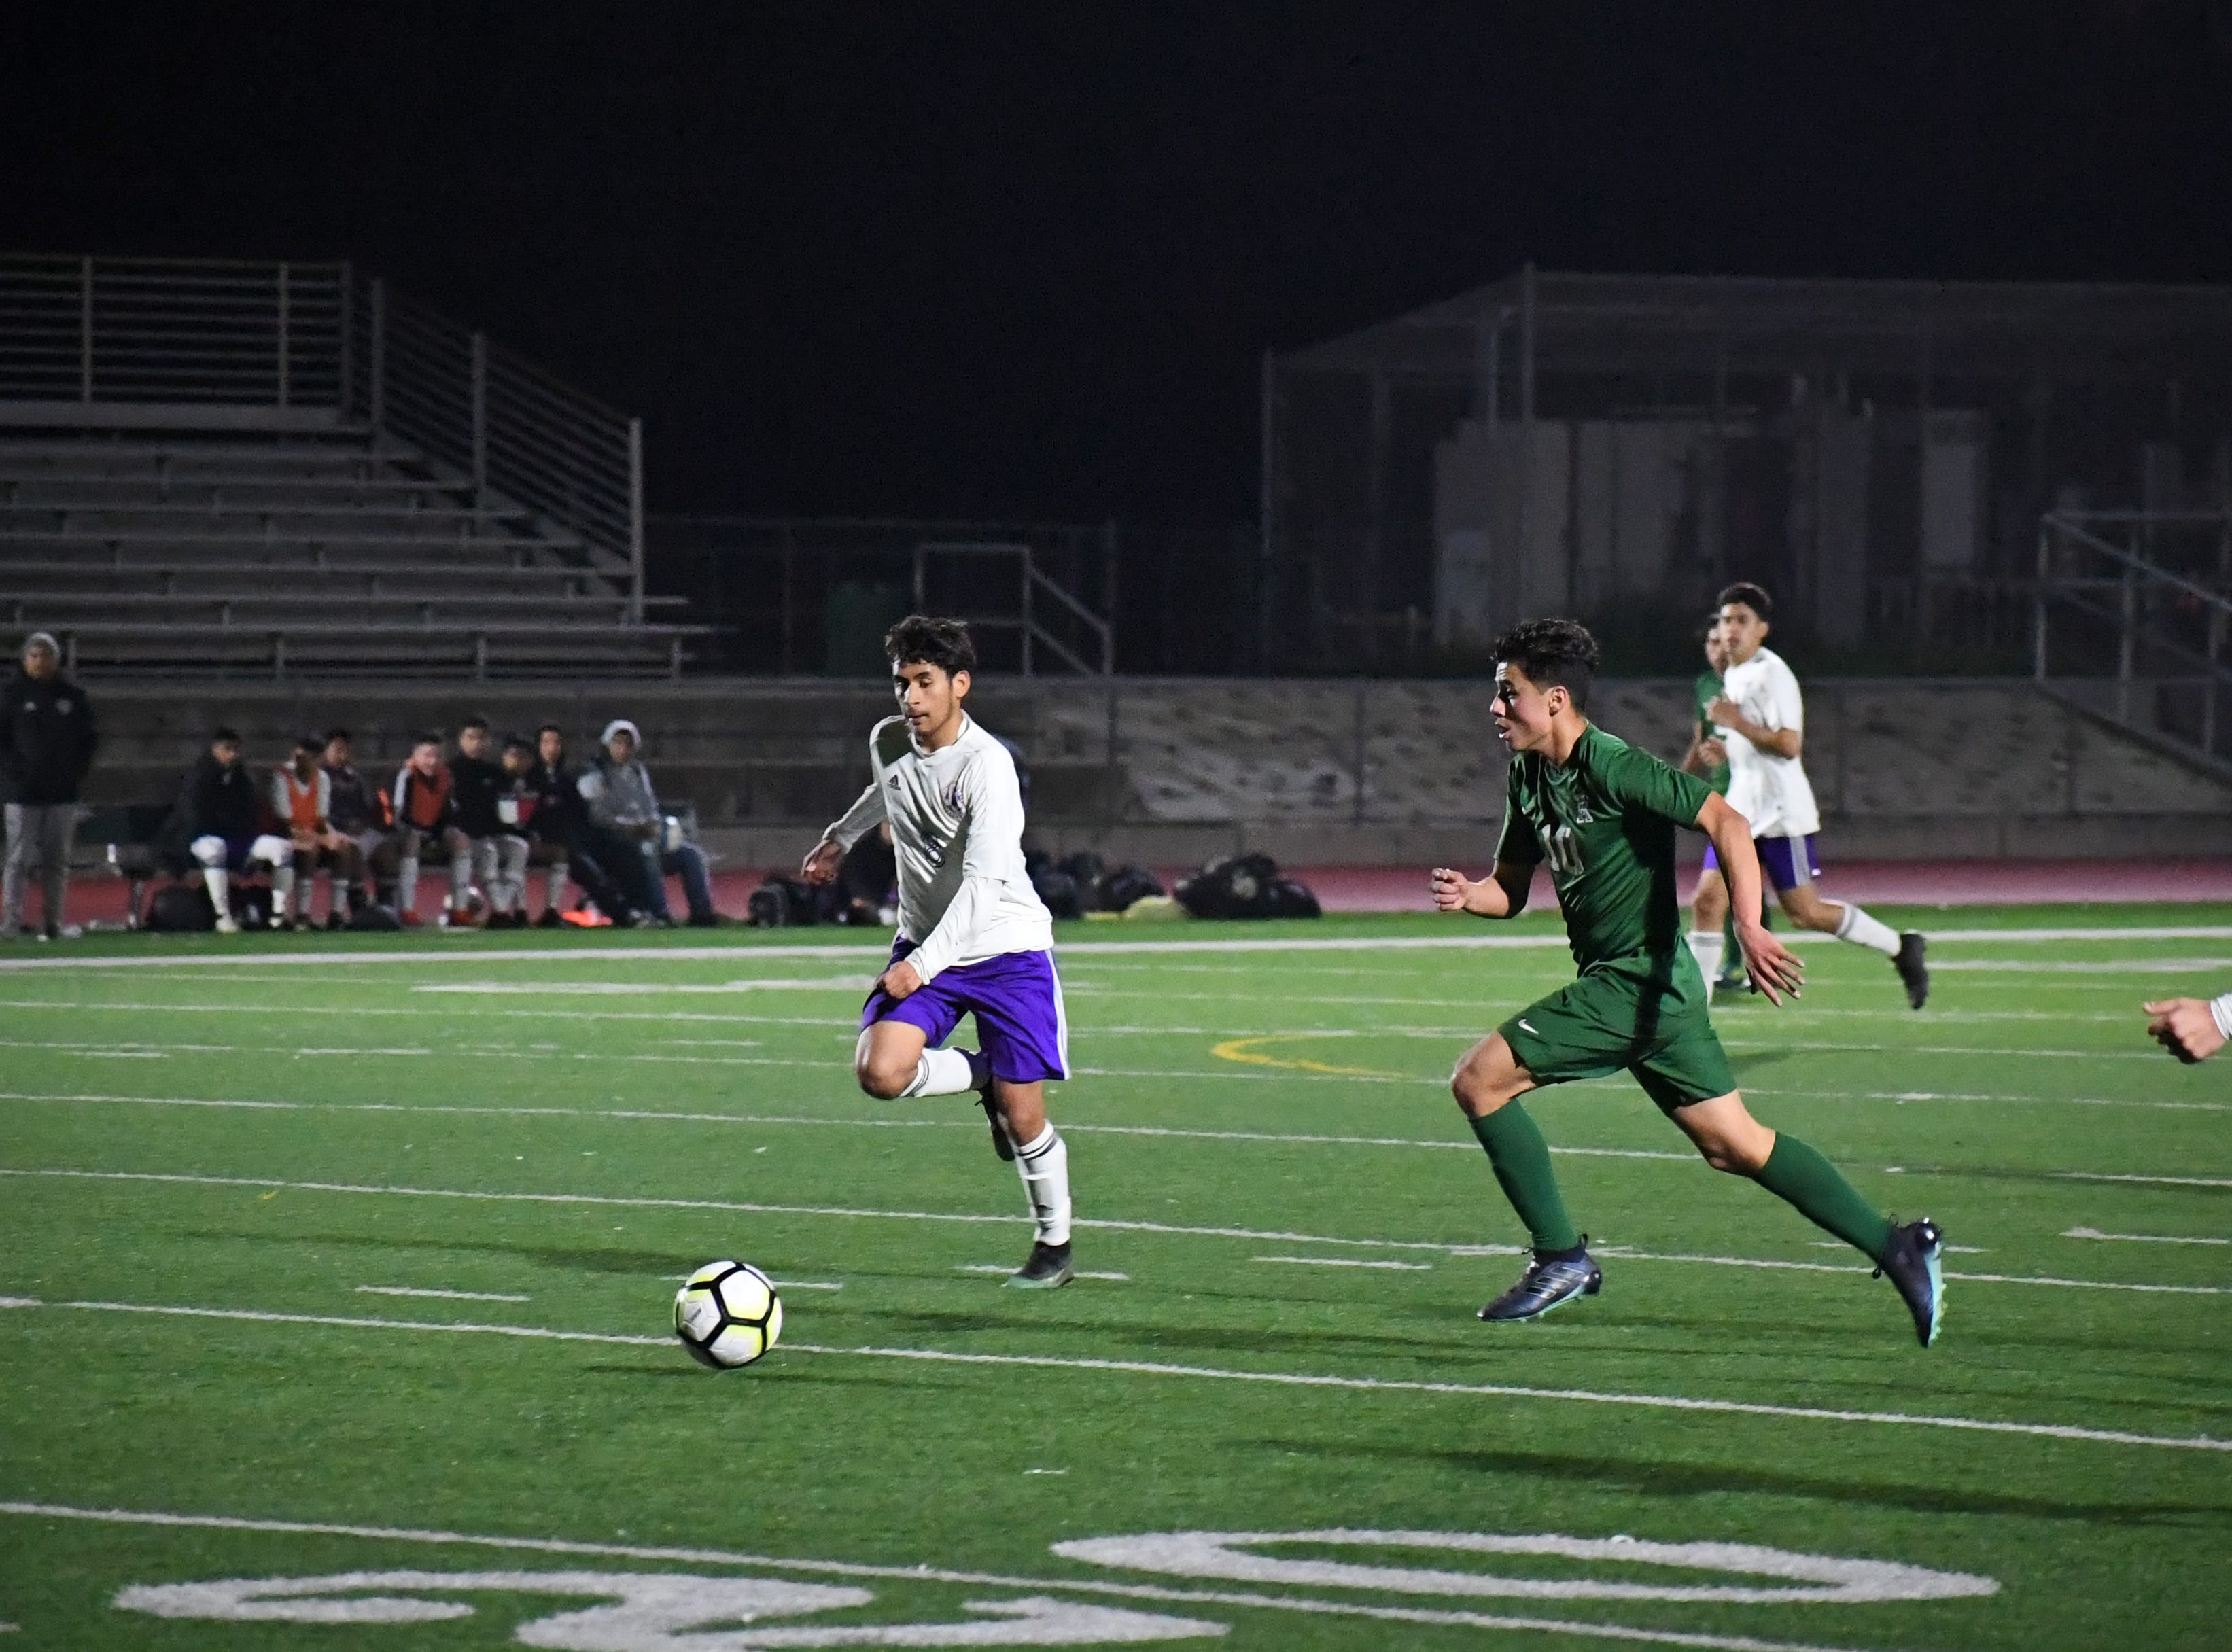 Alisal midfielder Jacob Cabrera (10) prepares to pass to Abraham Montaño on the attack.